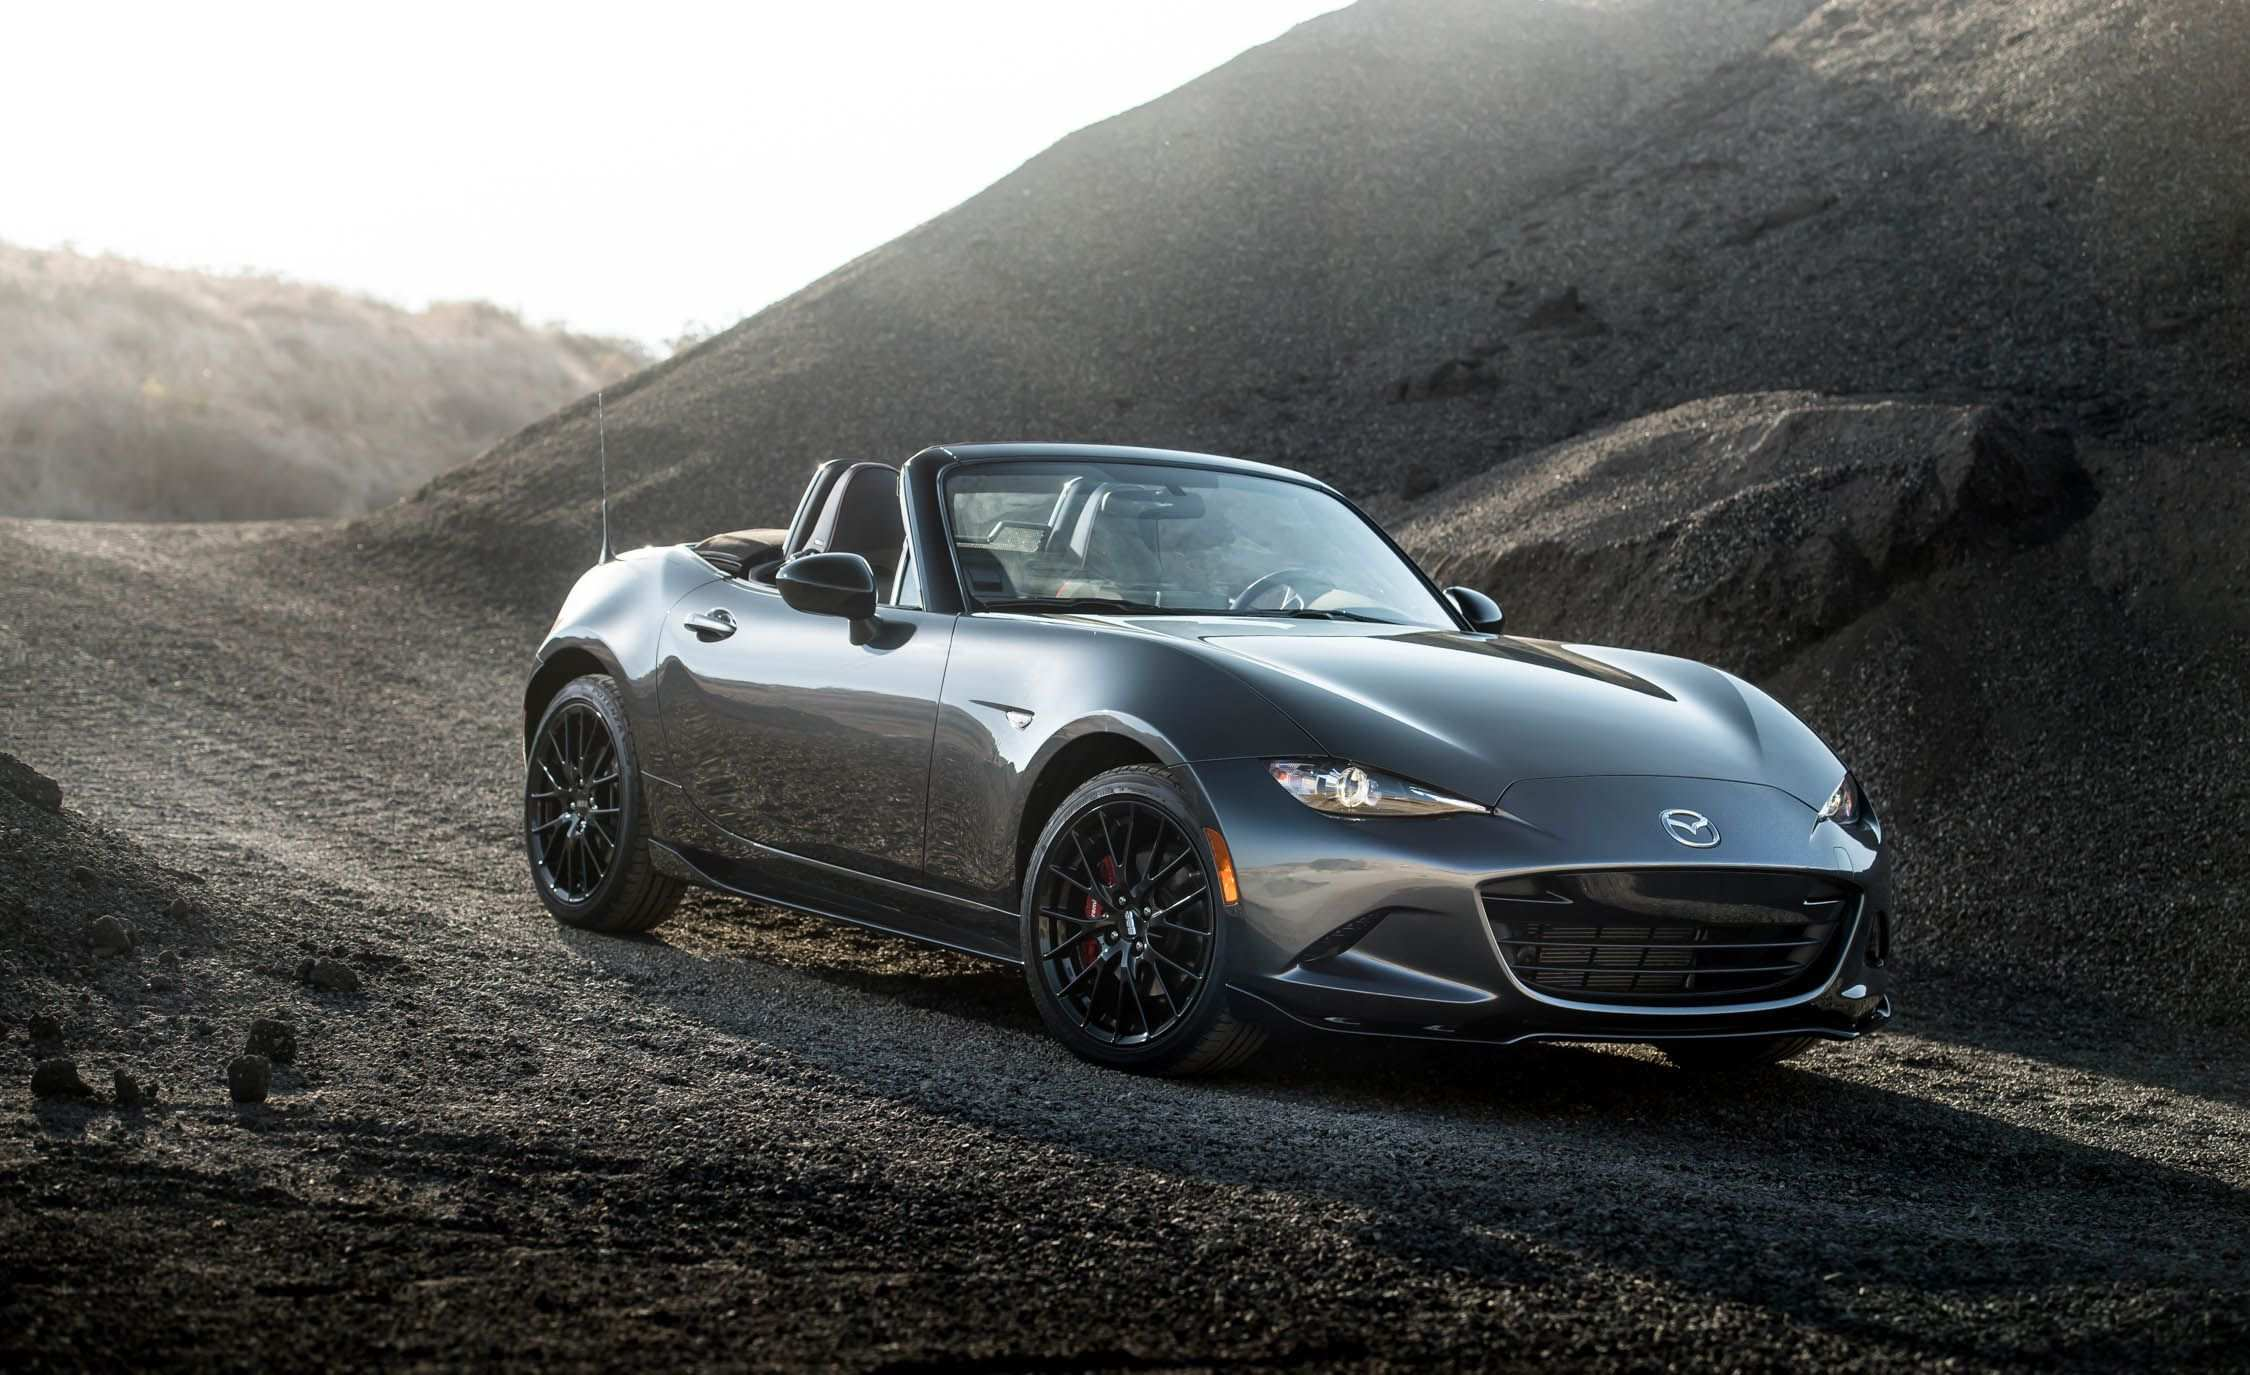 93 The Best 2019 Mazda Mx 5 Miata Configurations